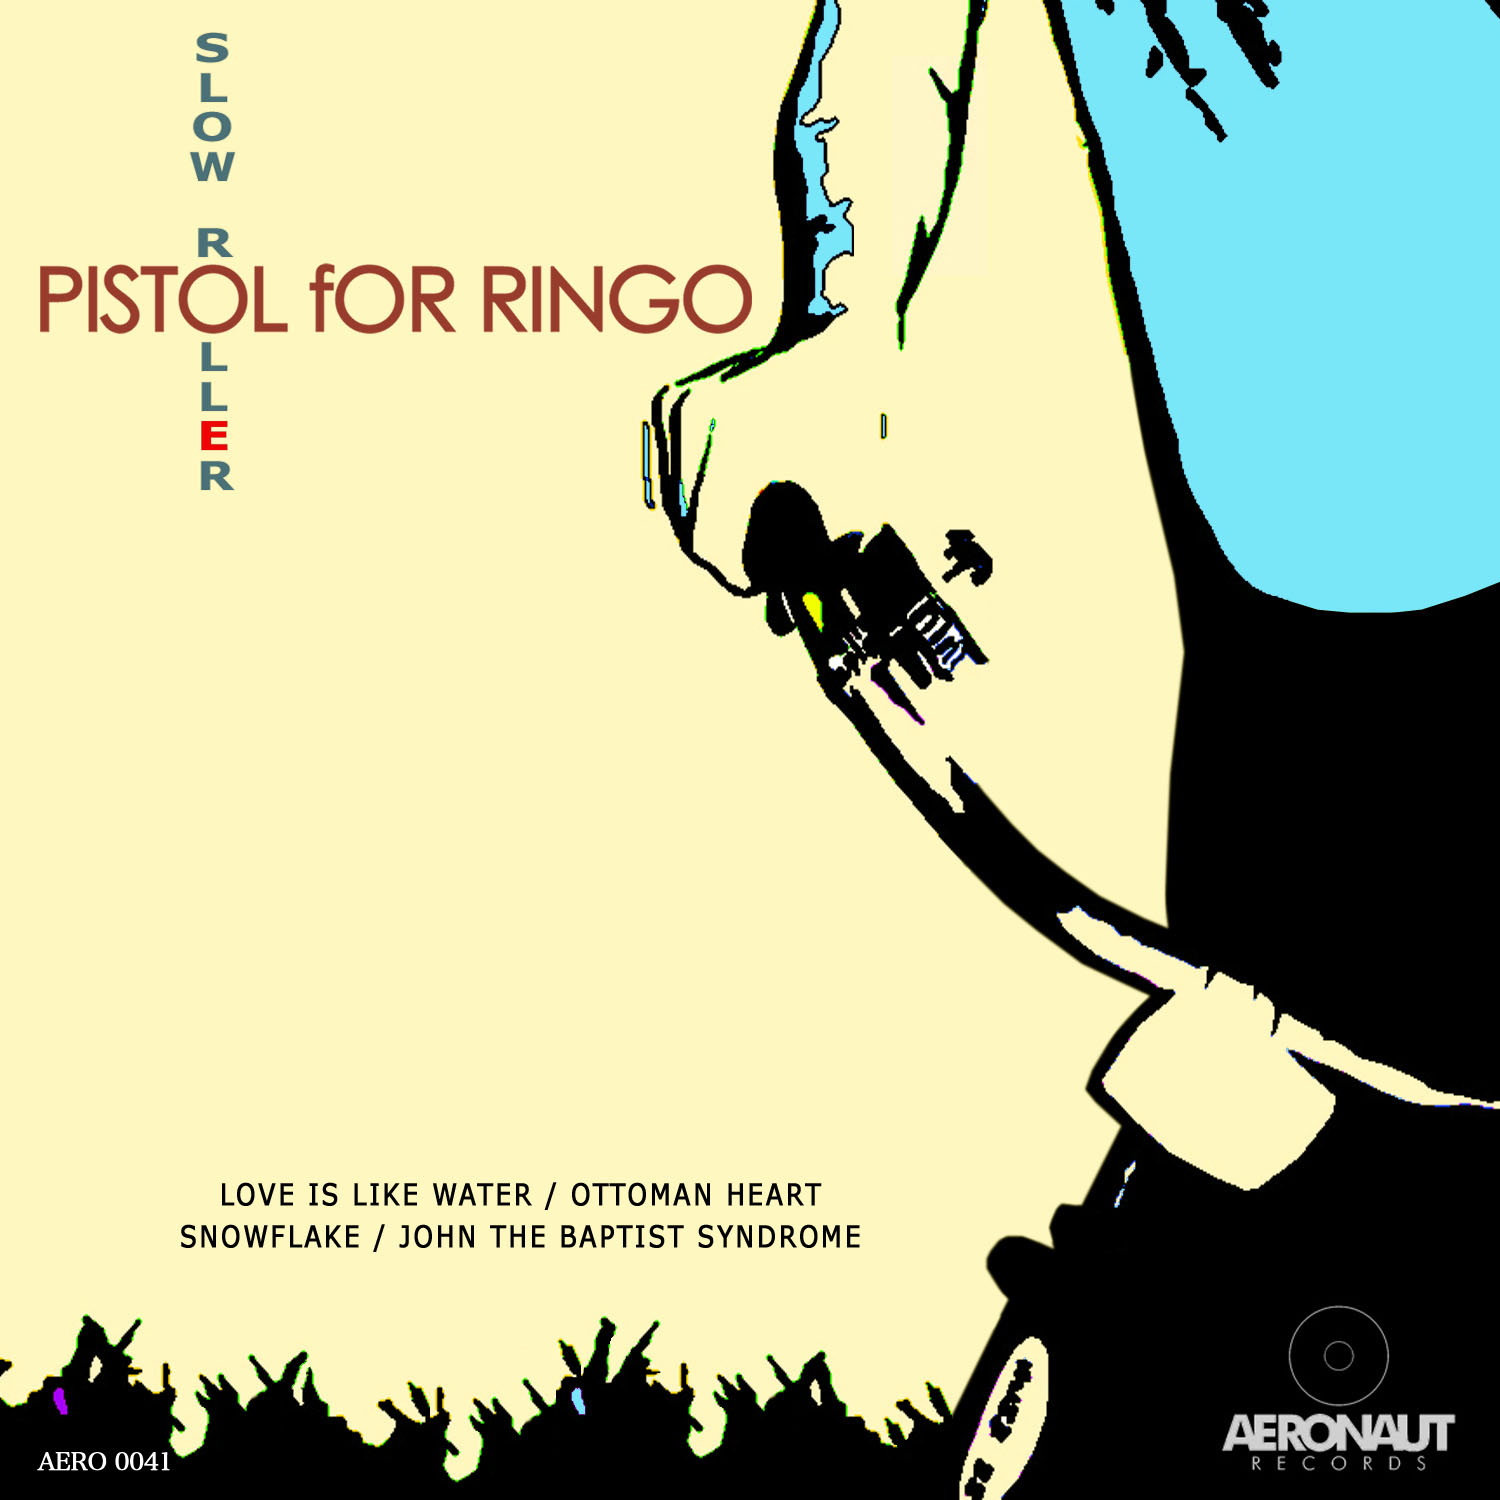 Pistol For Ringo     Slow Roller